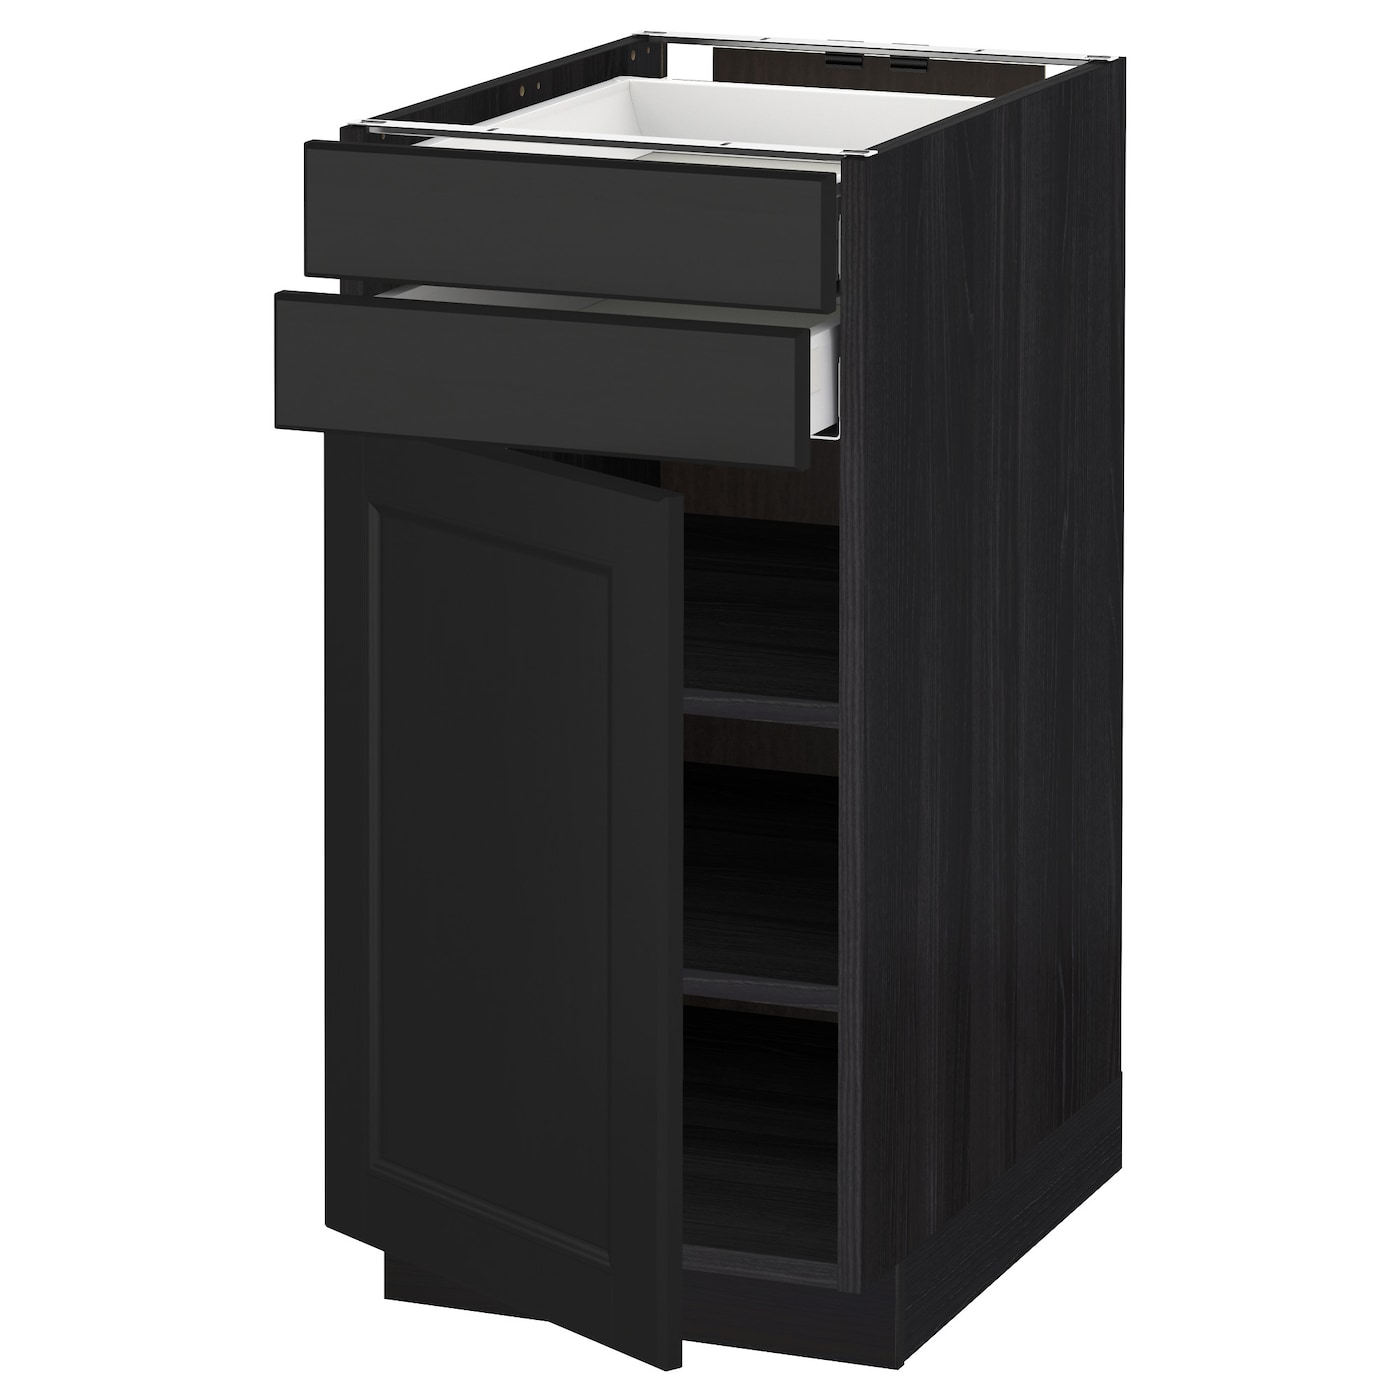 Ikea Kitchen Black Cabinets: METOD/MAXIMERA Base Cabinet W Door/2 Drawers Black/laxarby